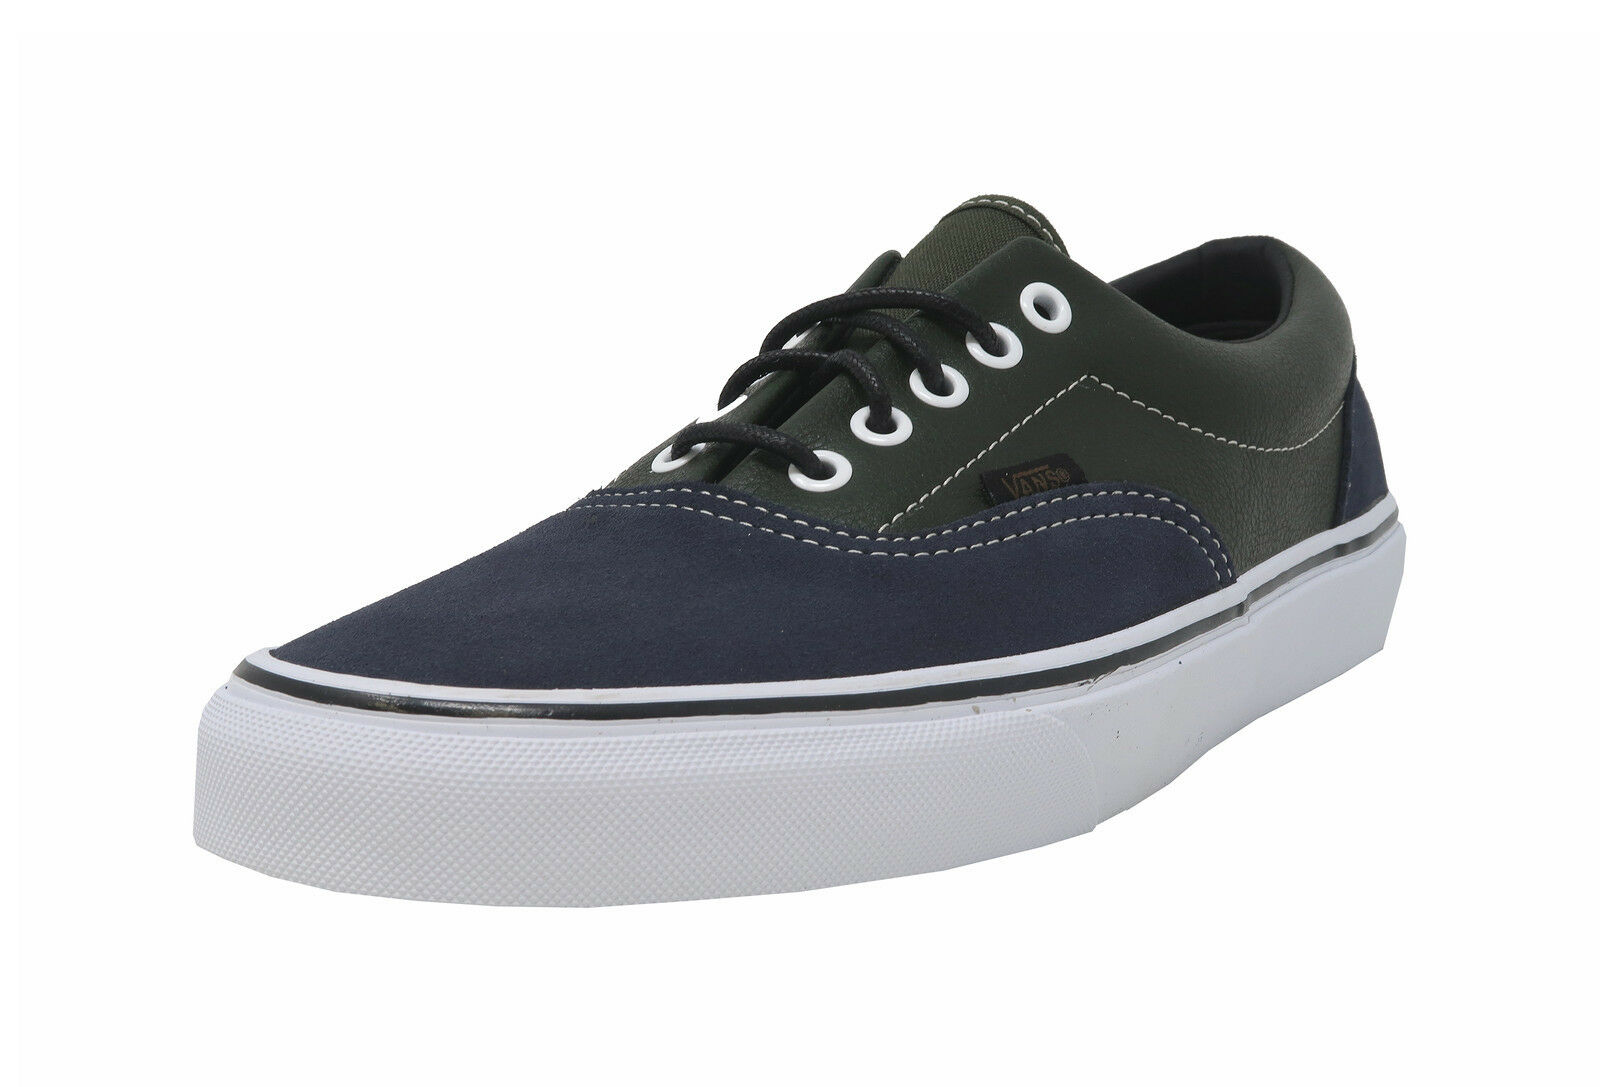 VANS Era Navy blu Suede verde Leather Lace Up sautope da ginnastica Adult Men sautope Sautope classeiche da uomo